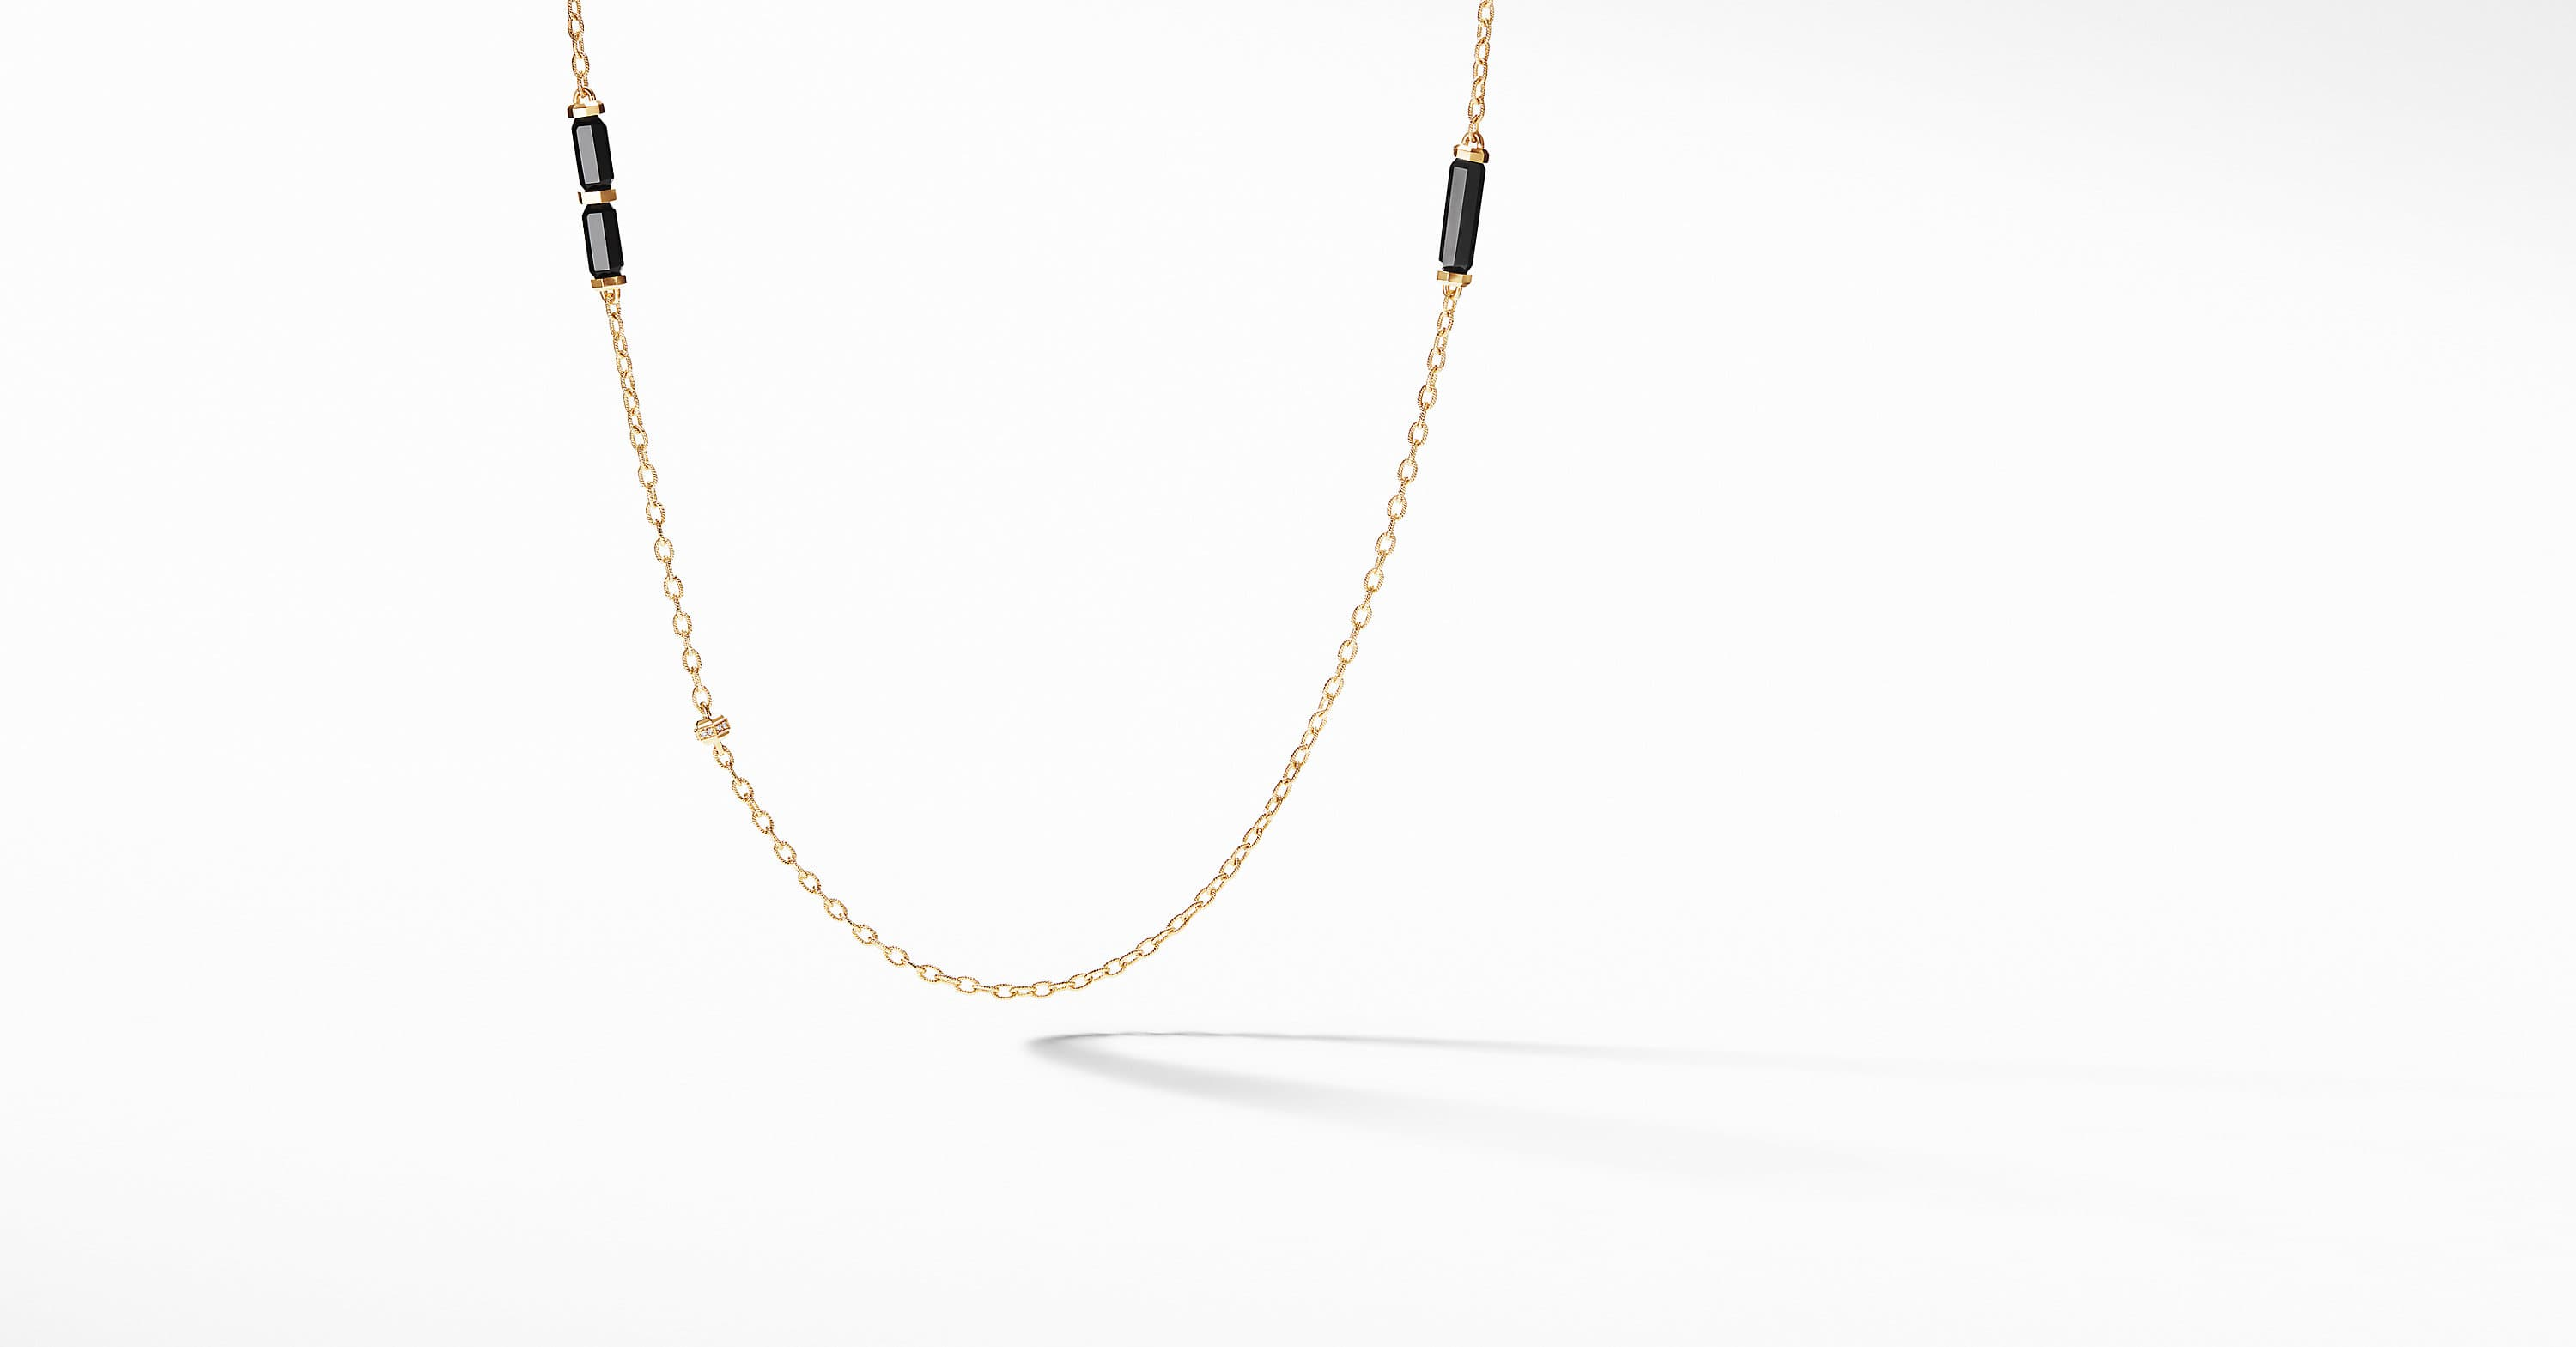 b2a143ee804e2 Barrels Long Station Necklace with Diamonds in 18K Gold | David Yurman